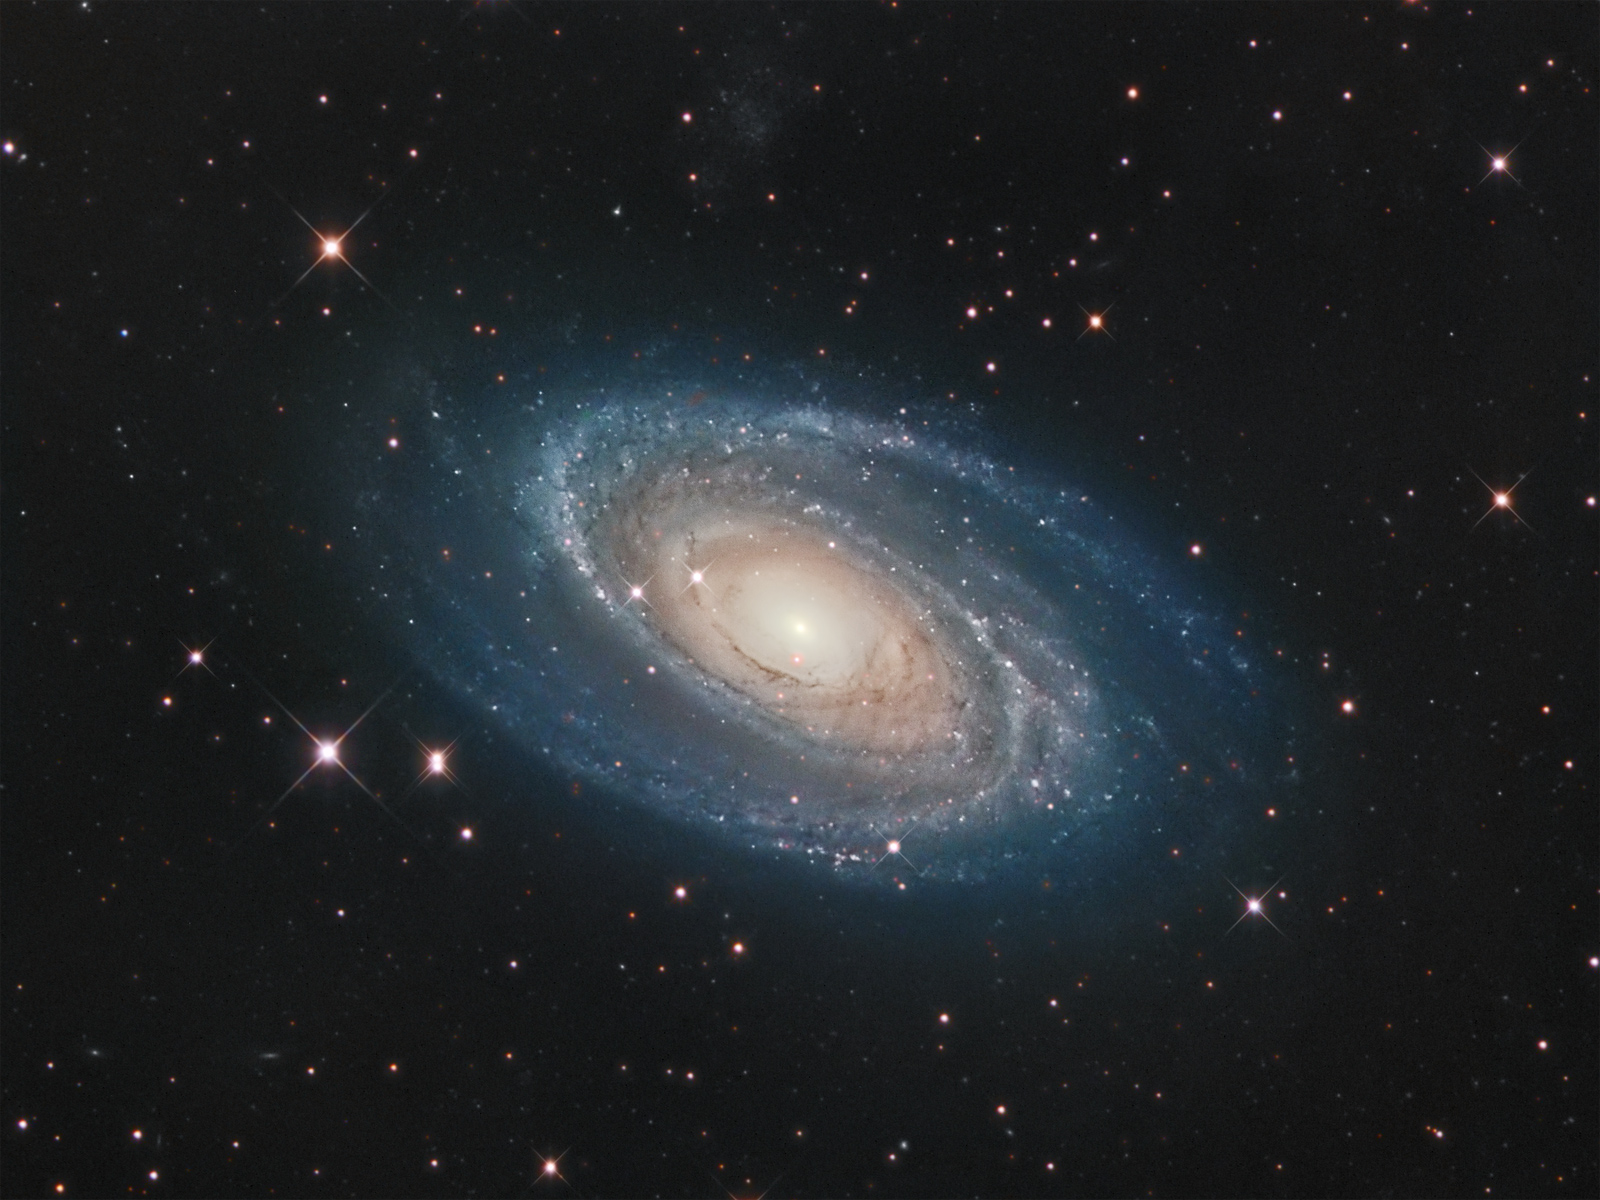 galaxies s and e - photo #12